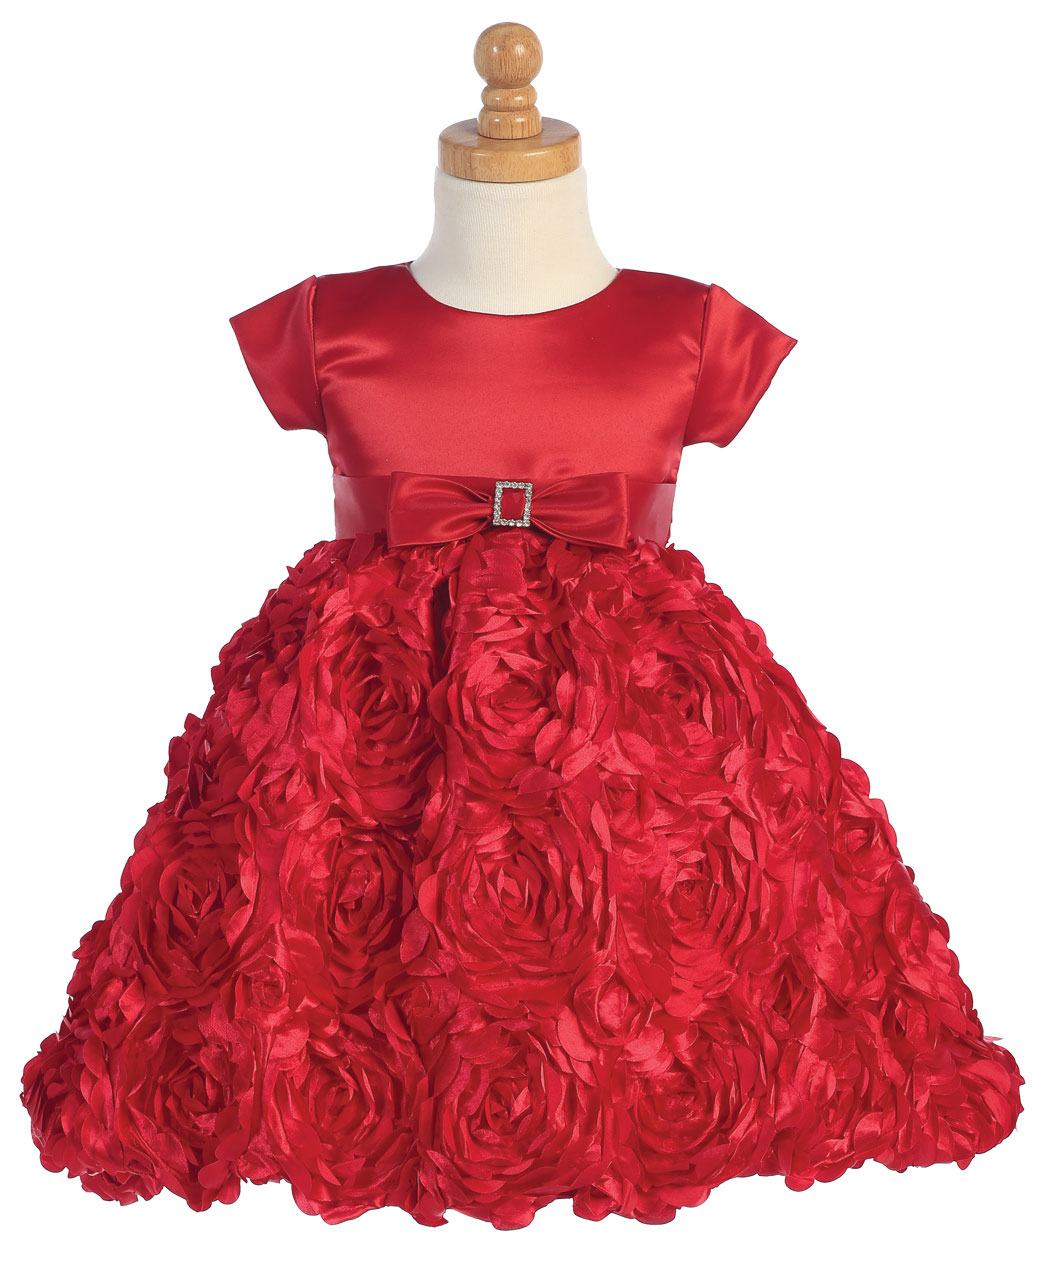 L C936R Holiday Dress Style C936 Satin Bodice with Floral Ribboned Skirt